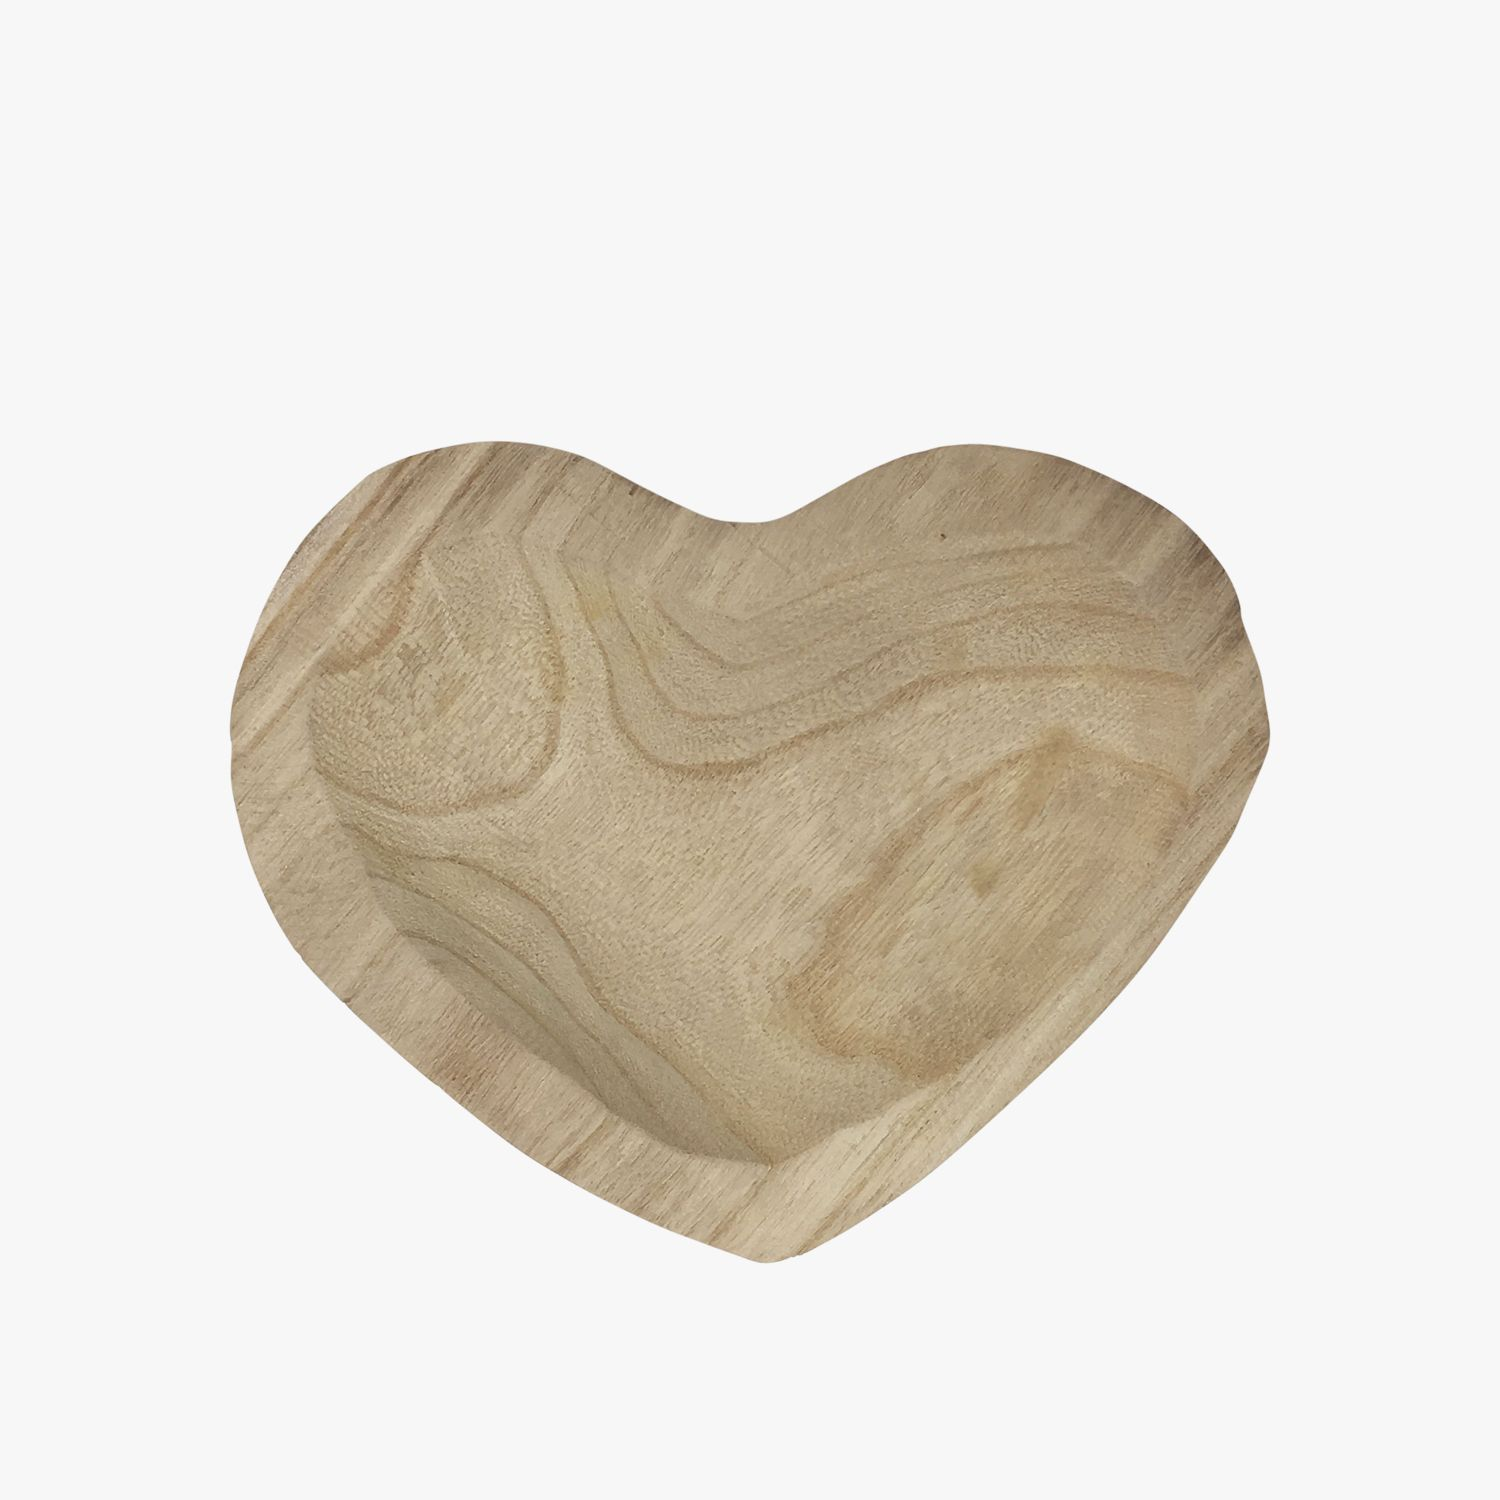 Hand Carved Paulownia Wood Heart Bowl Large Wood Bowl Wood Hearts Wood Bowls